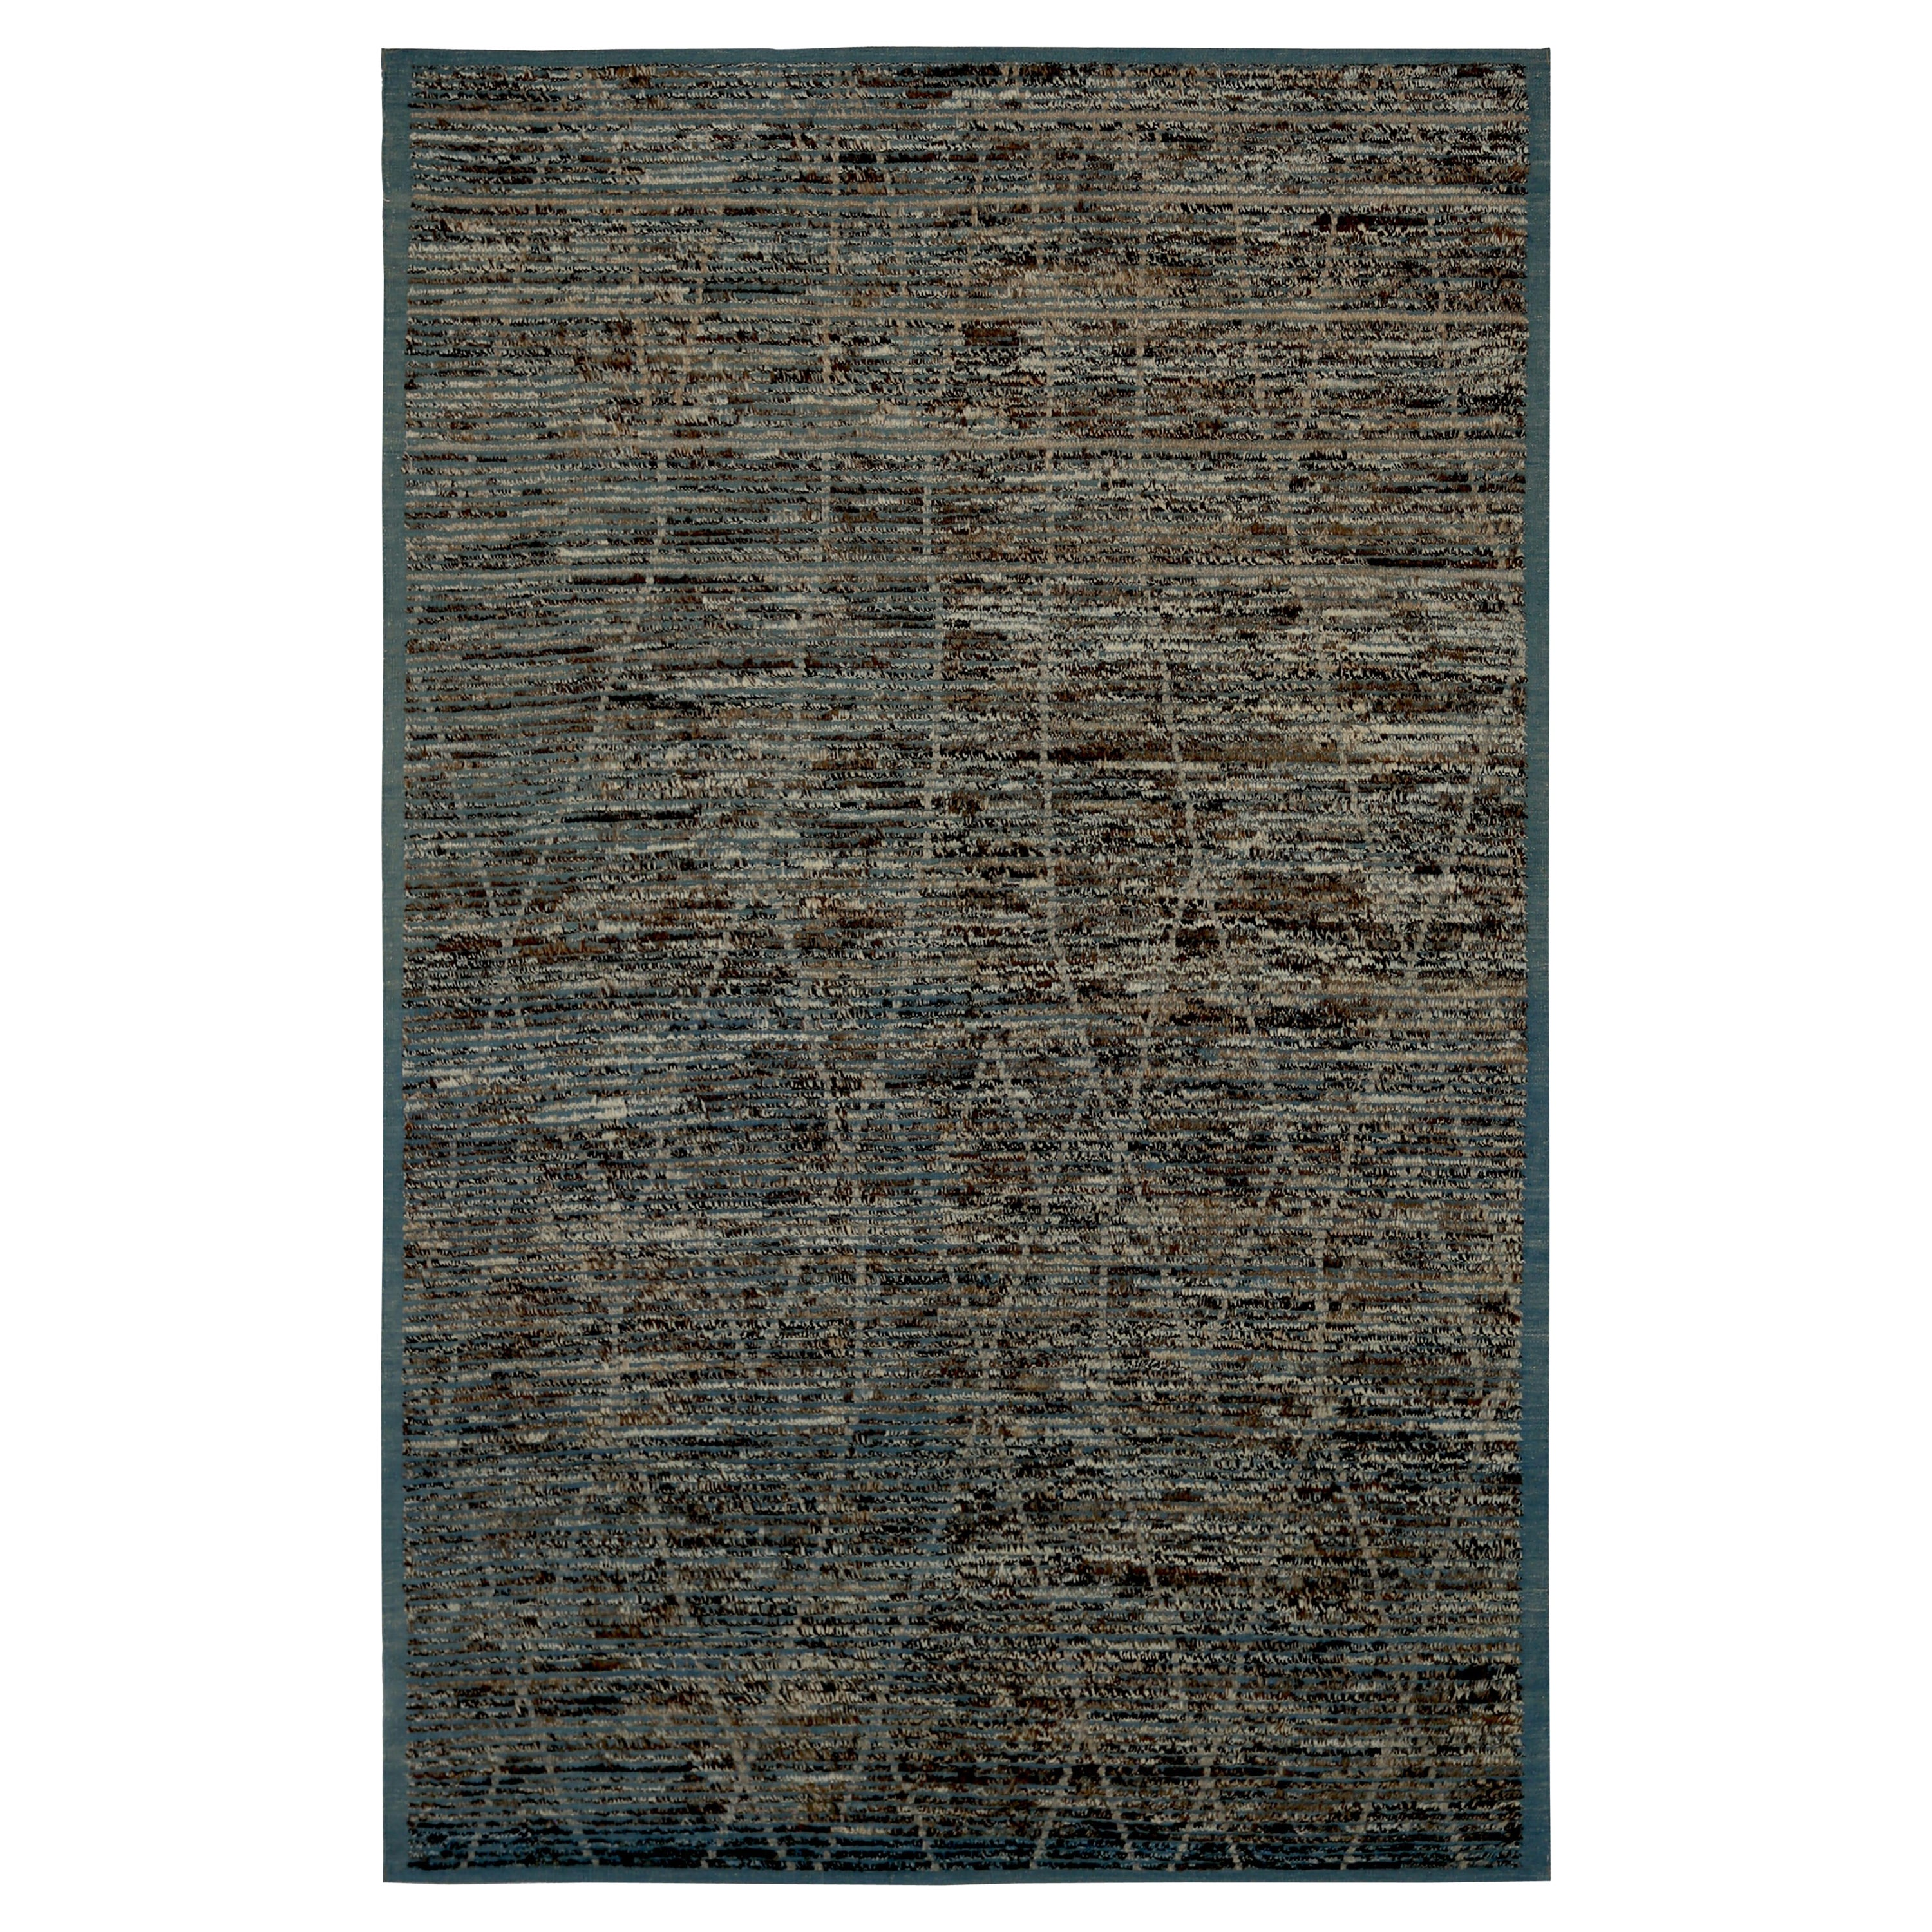 Nazmiyal Collection Navy Blue Textured Modern Distressed Rug. 6 ft 7 in x 10 ft